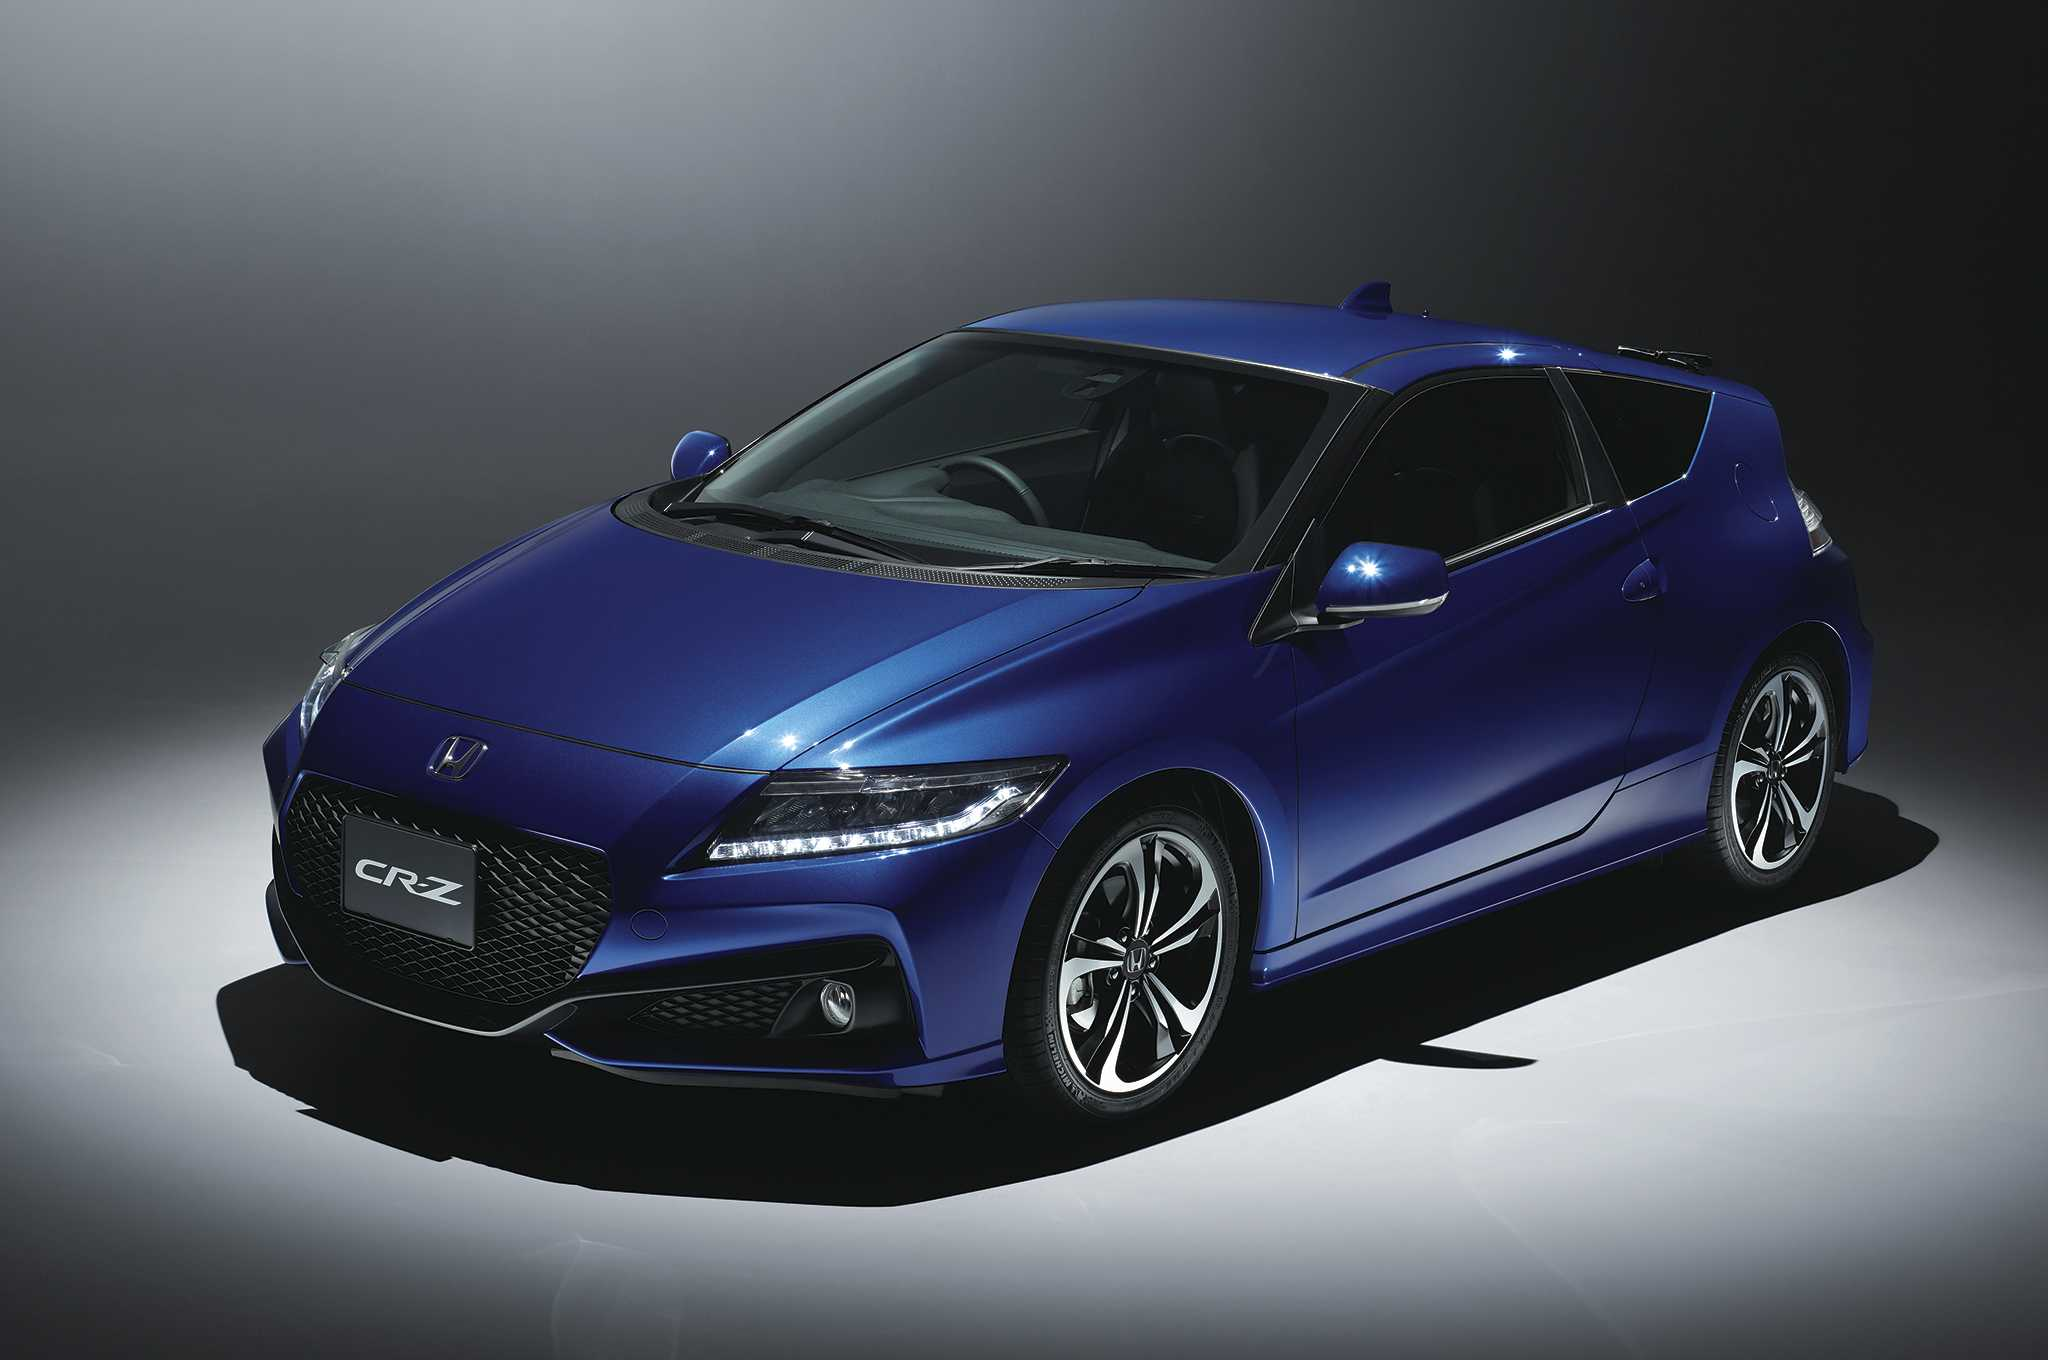 Honda CR-Z Alpha Final Label Edition Launched in Japan